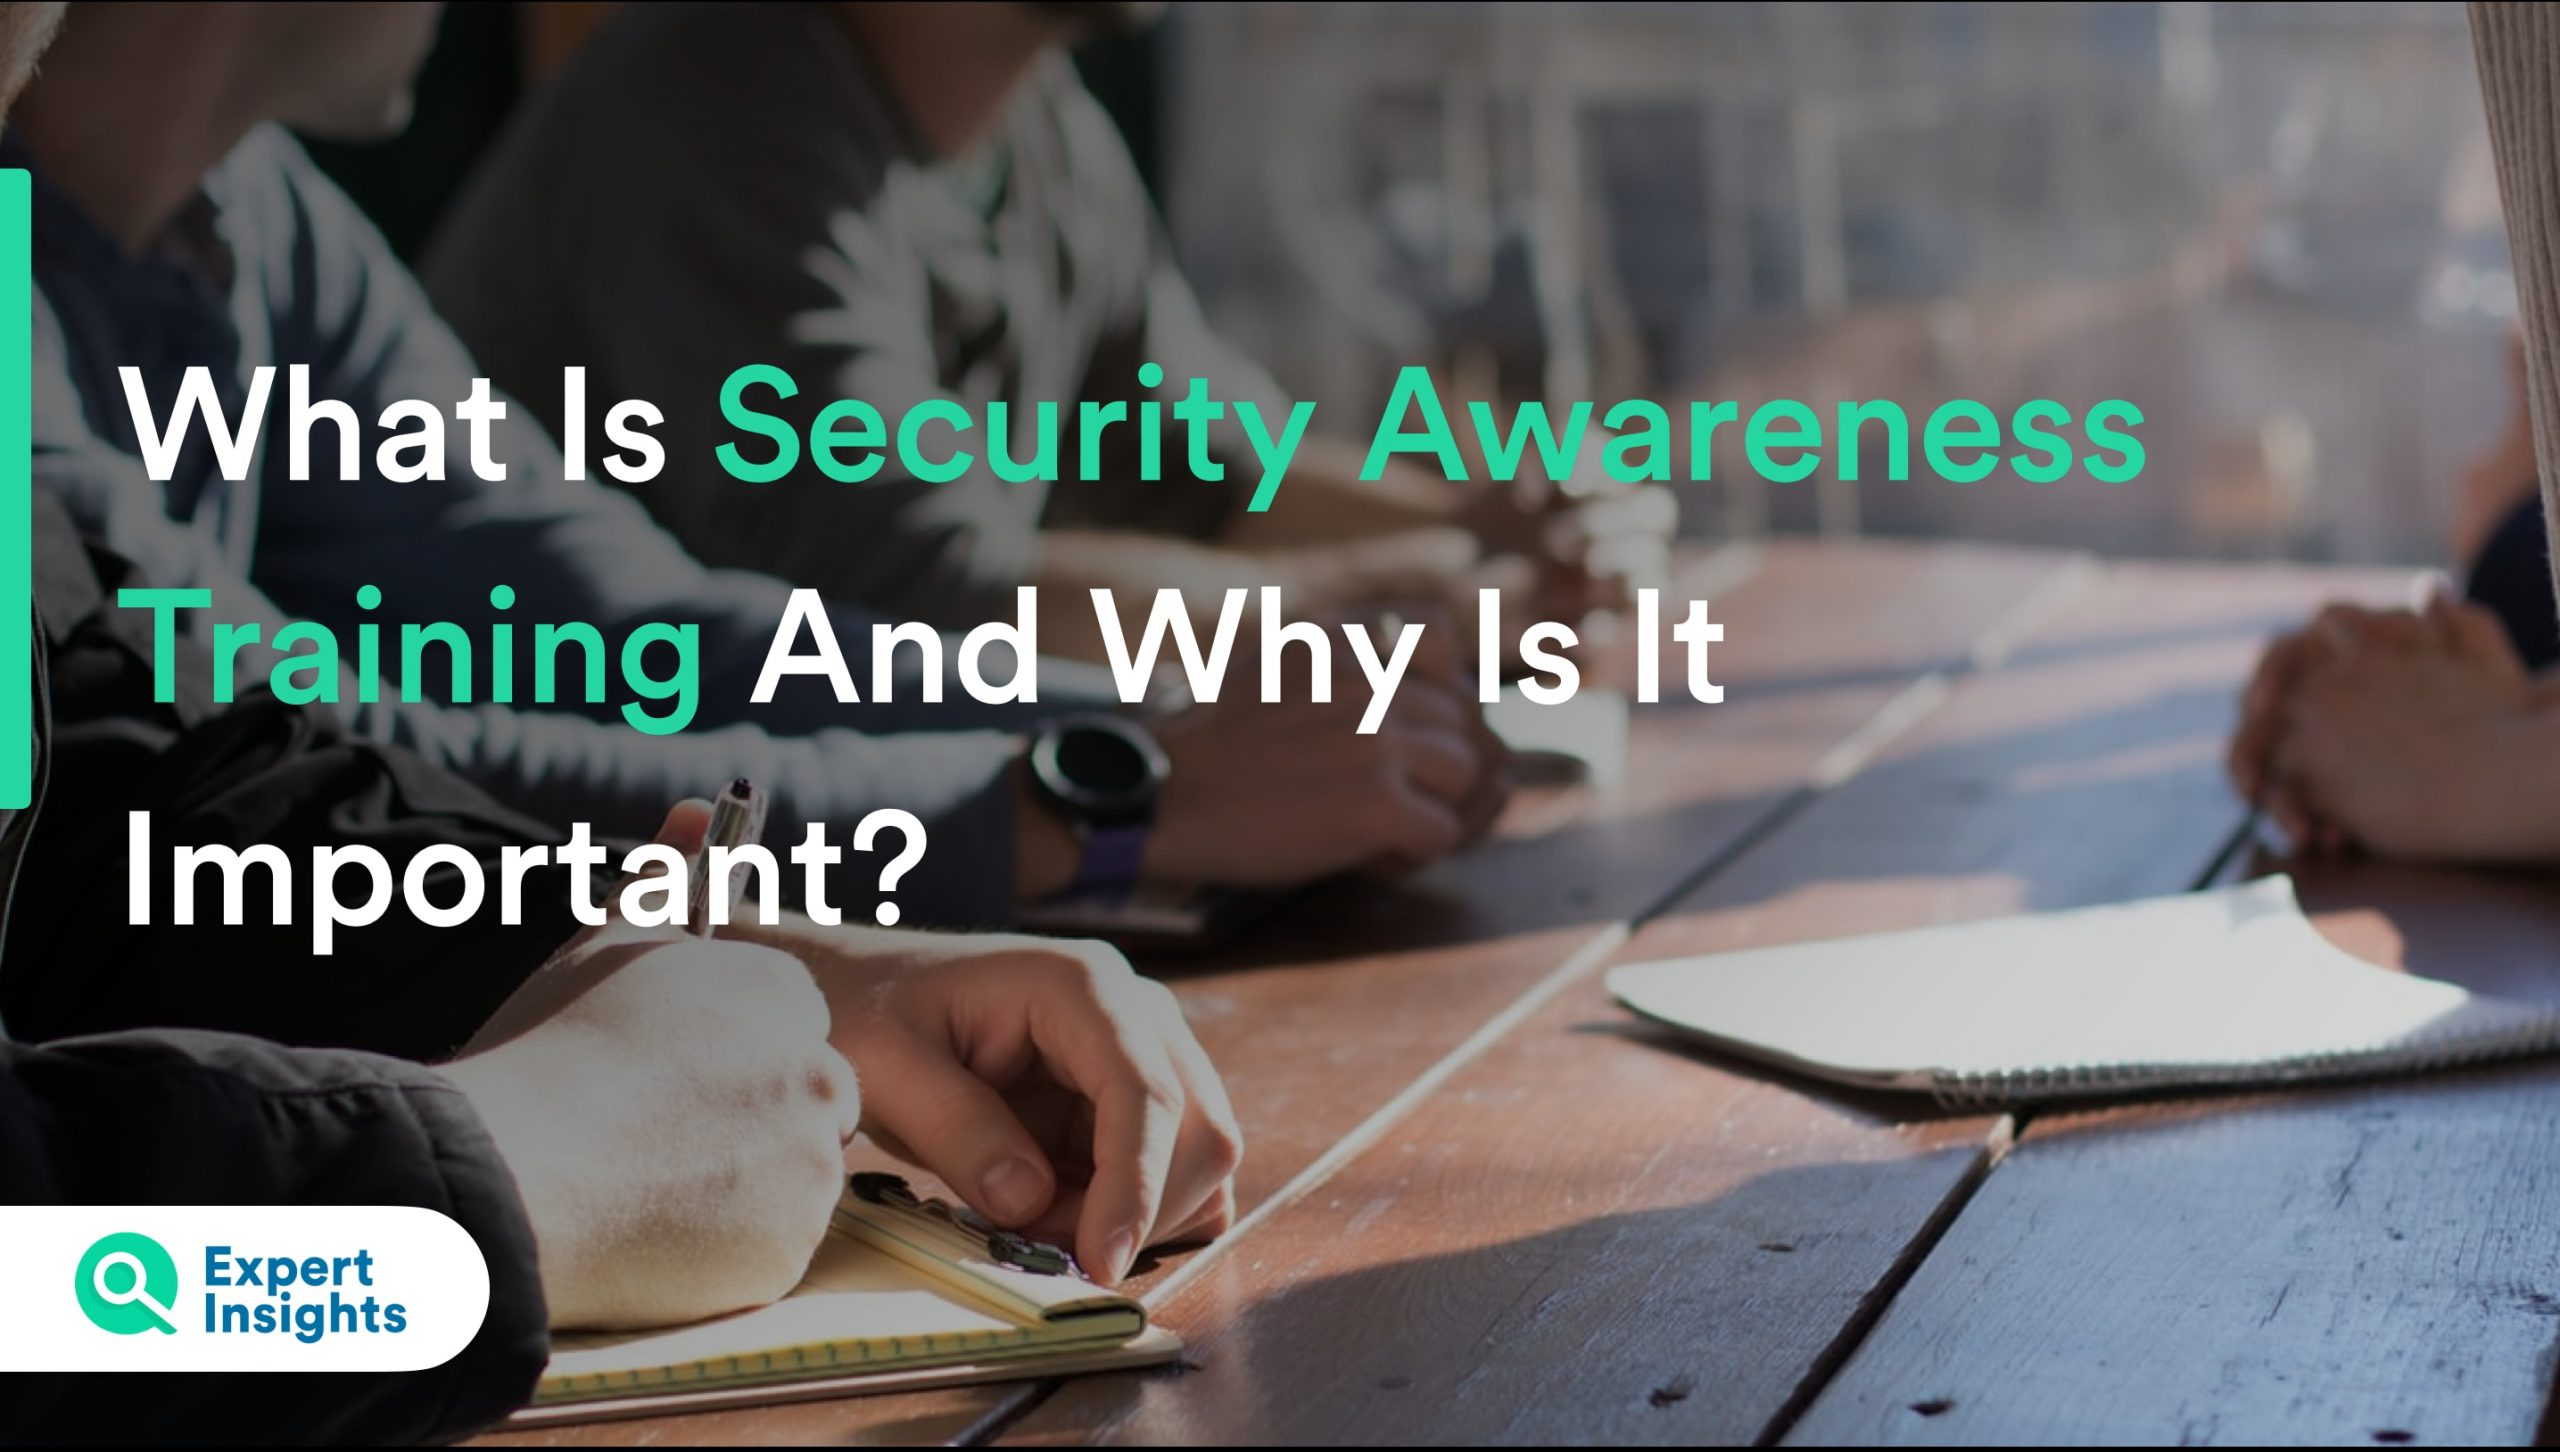 What Is Securty Awareness Training and Why Is It Important?